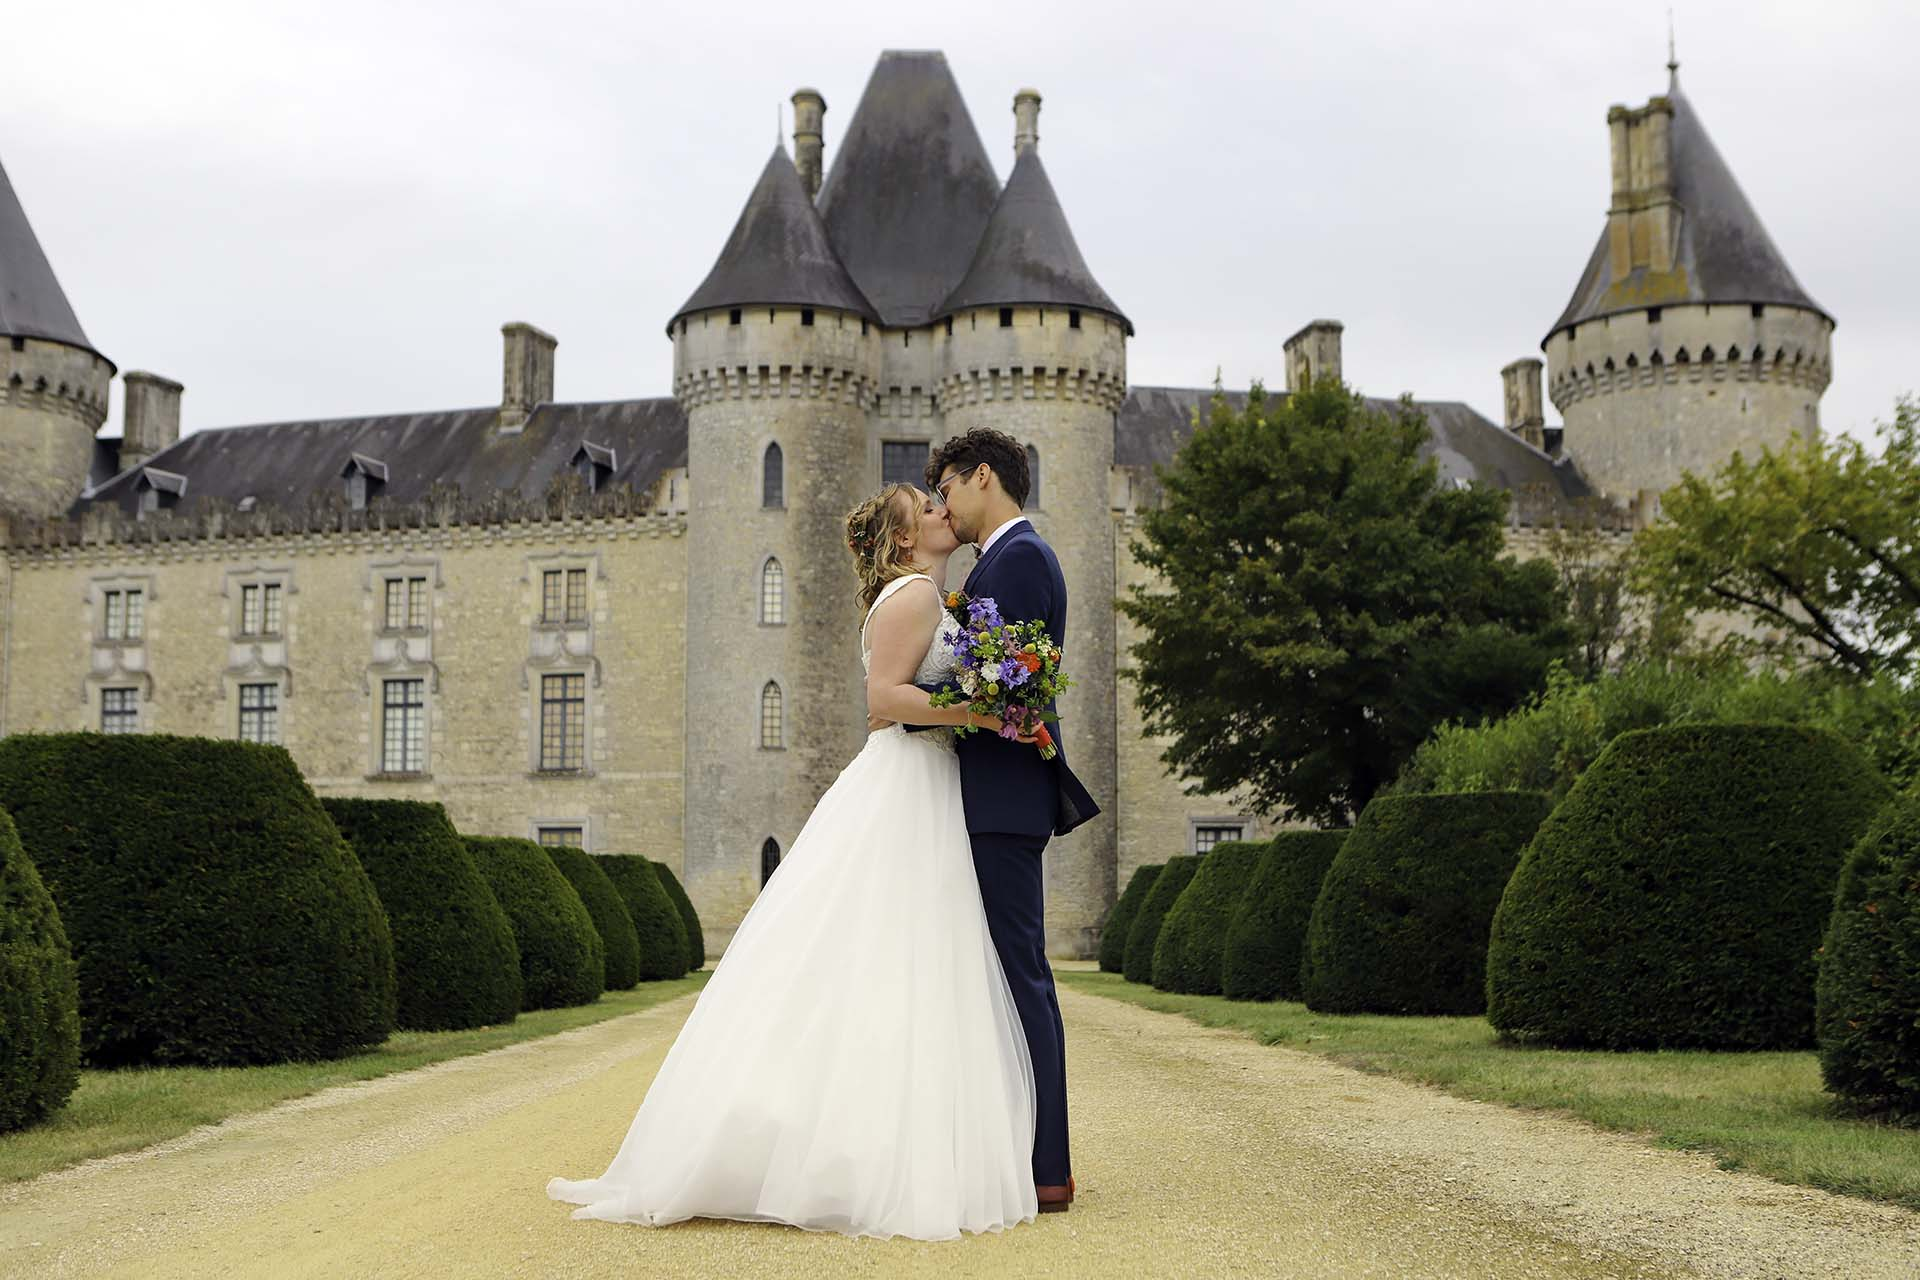 photographe mariage gironde photographe mariage bordeaux weddind photographer